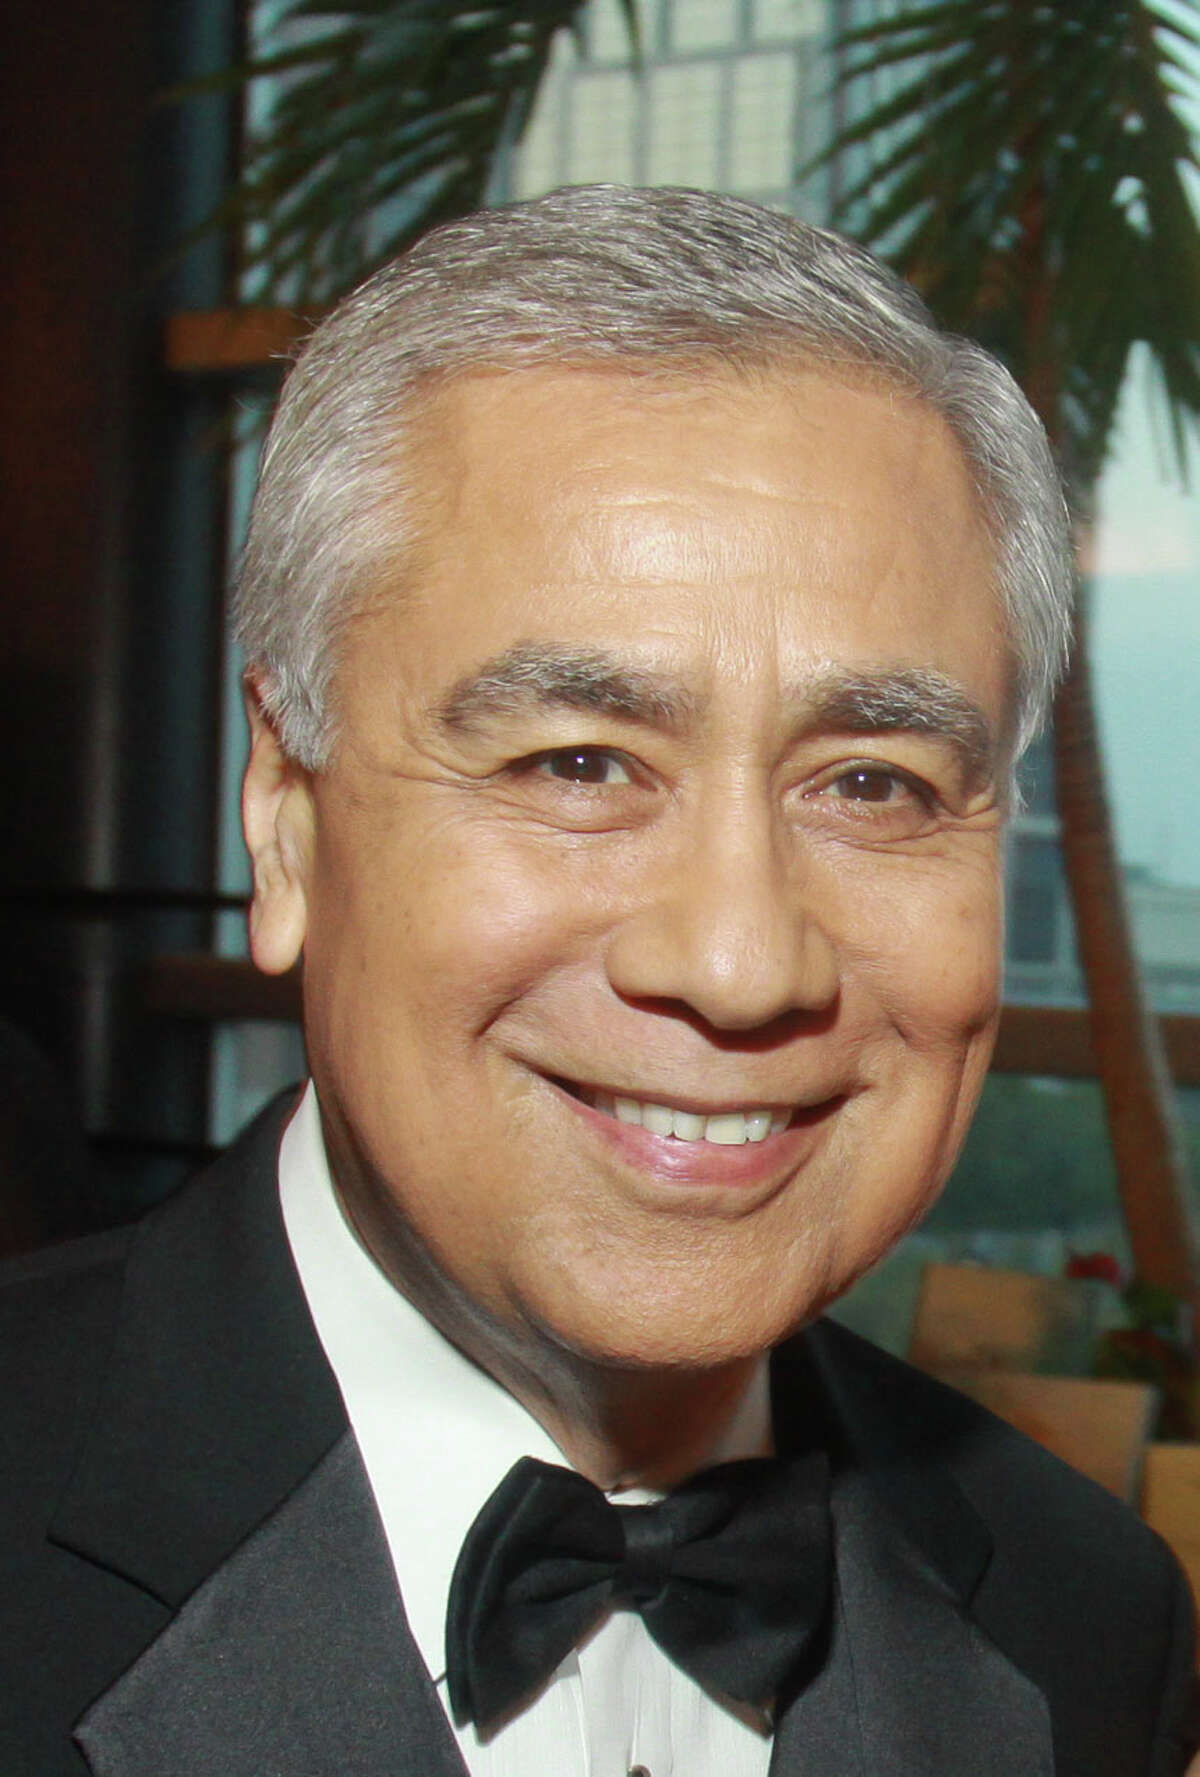 >>> 2020: Houston TV anchors and reporters on the move ... Bill Balleza January 2020In Oct., KPRC 2 anchor Bill Balleza announced that he will retire from the station in January, after 39 years.RELATED: After 39 years, KPRC 2 anchor Bill Balleza plans to retire